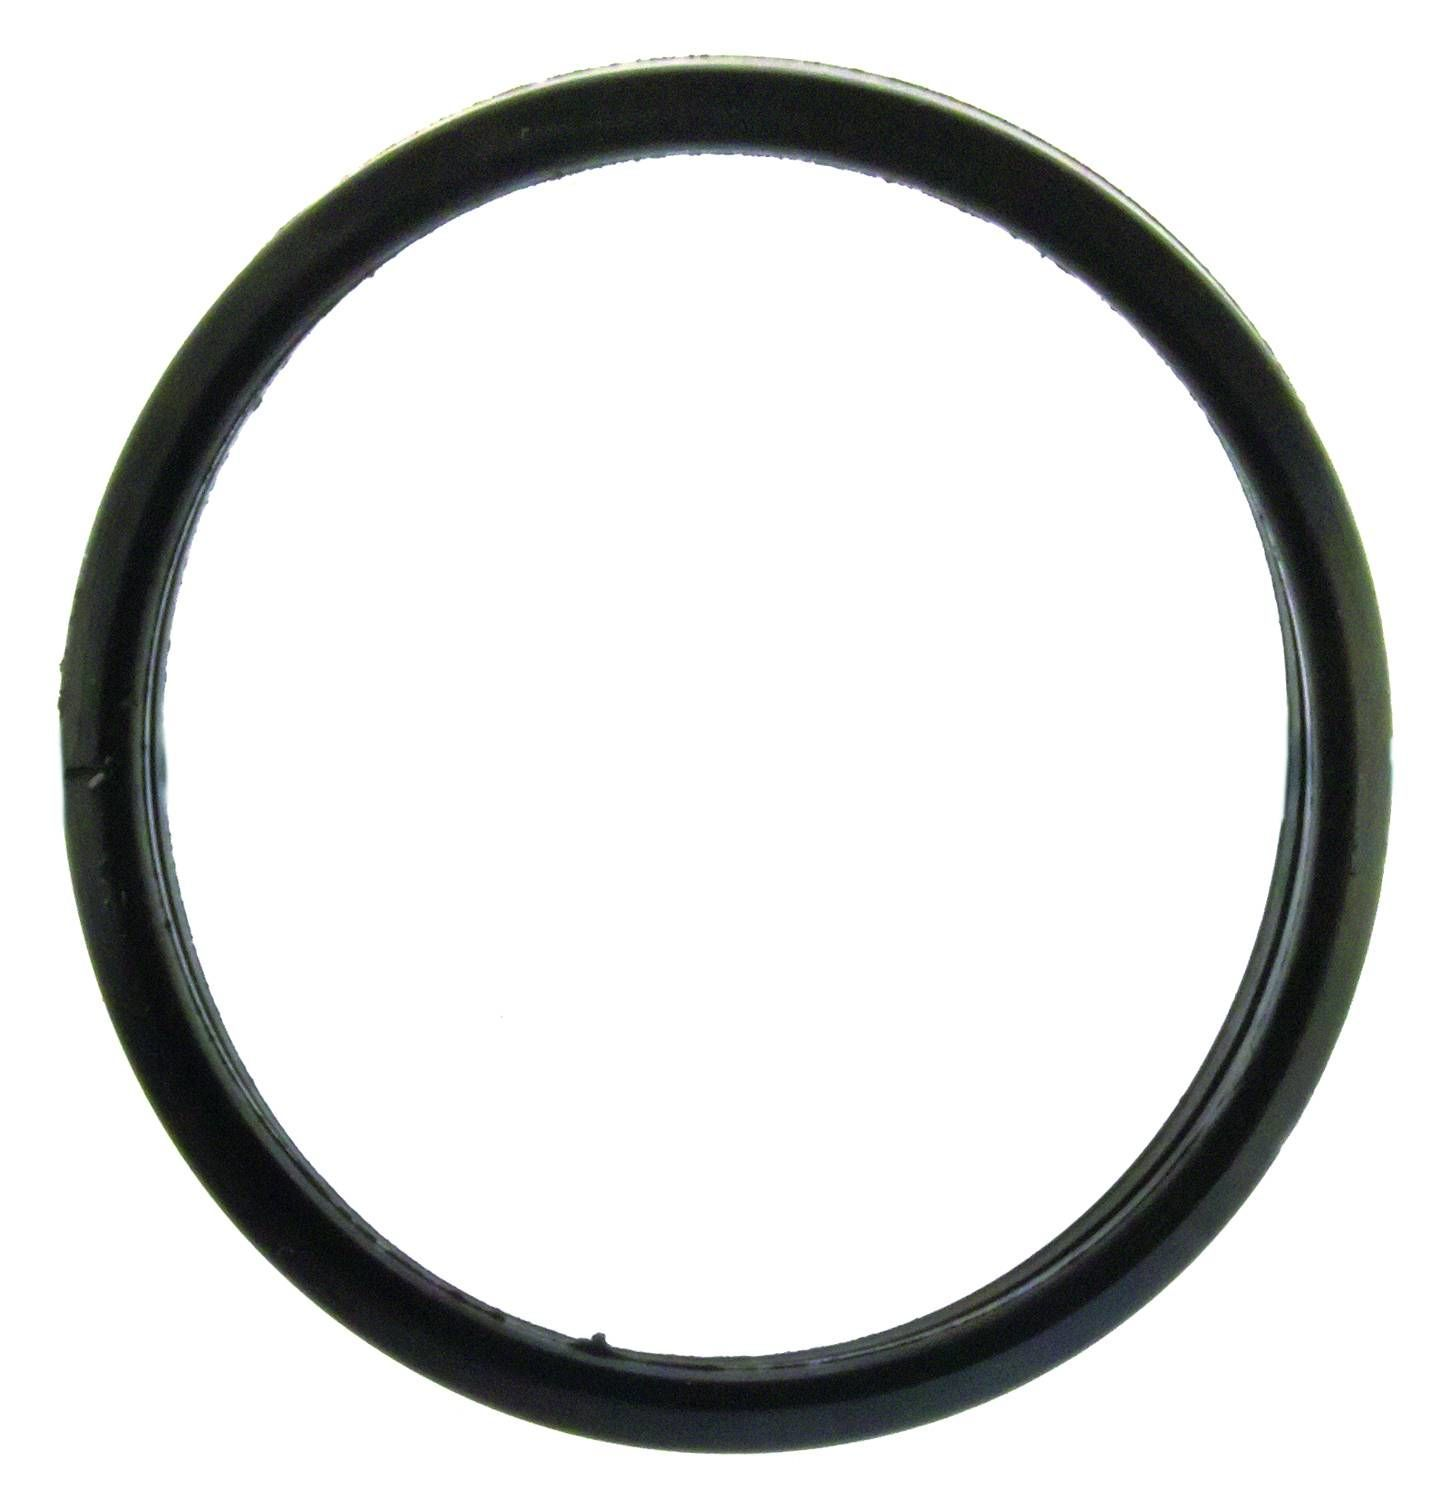 AISIN WORLD CORP. OF AMERICA - Engine Coolant Thermostat Gasket - AIS THP-101